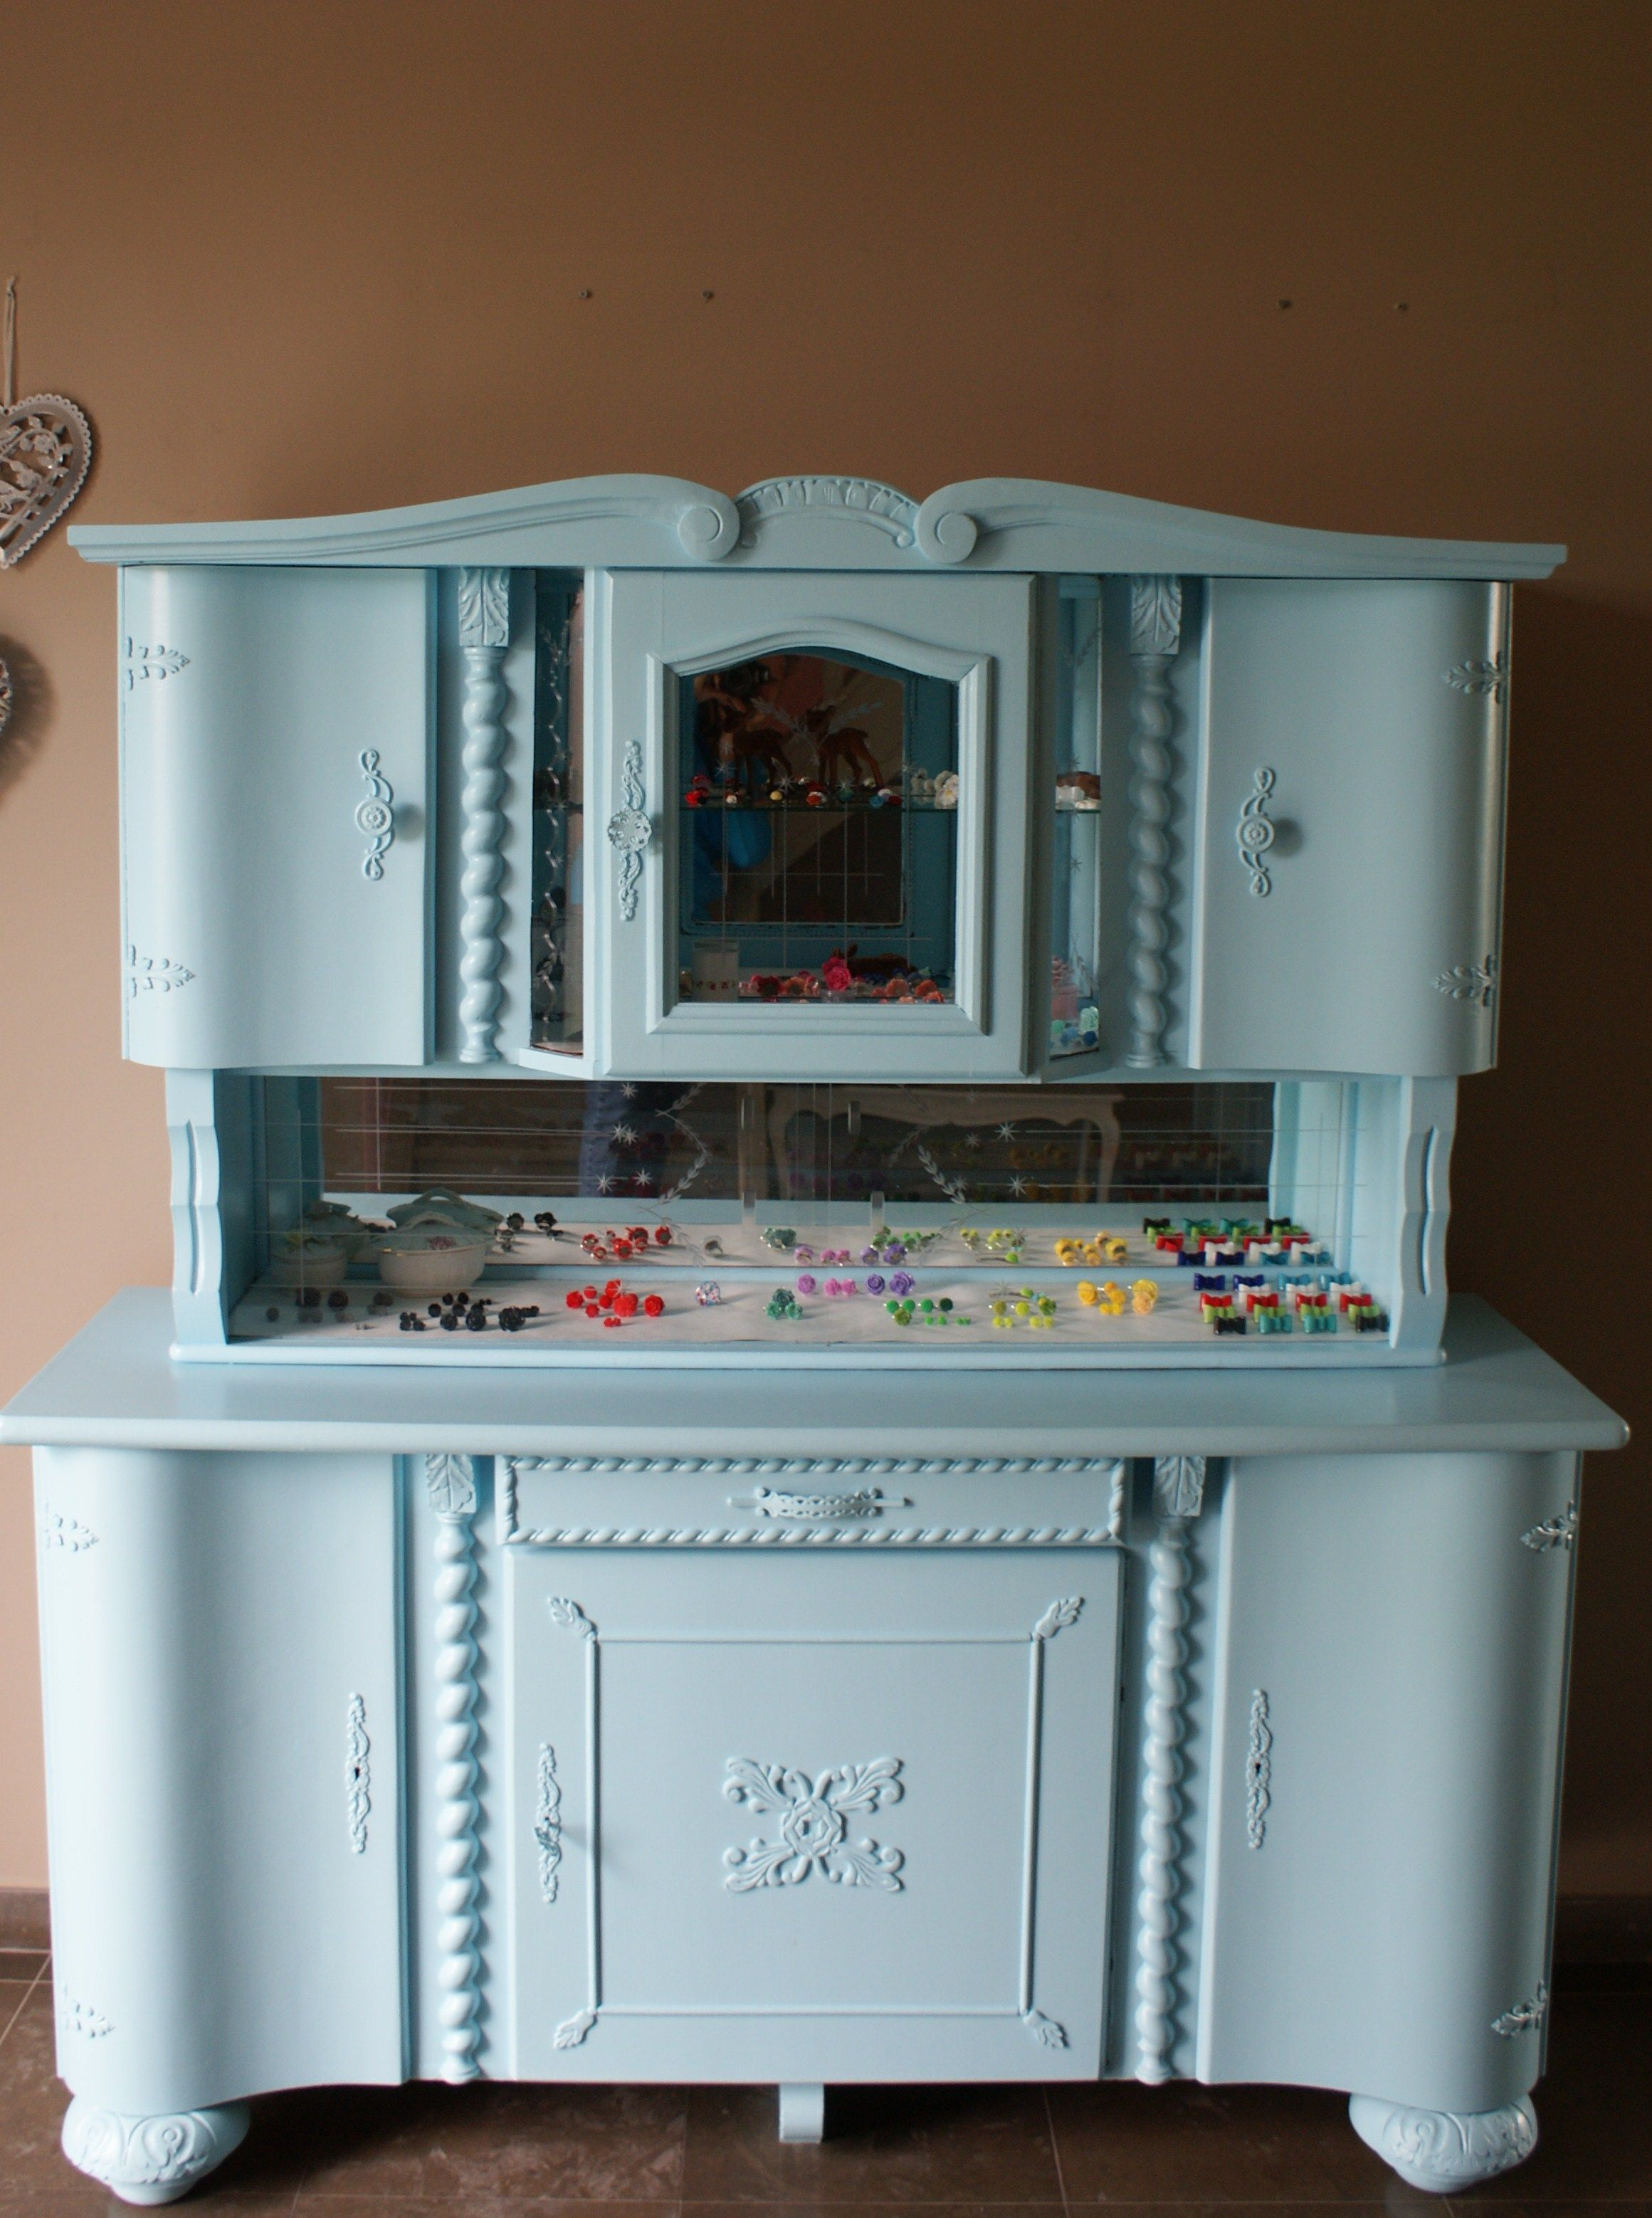 I Found This Vintage Closet In A Second Hand Store And Painted It In Pale  Blue. I Use It As Storage For My Hand Made Jewels.